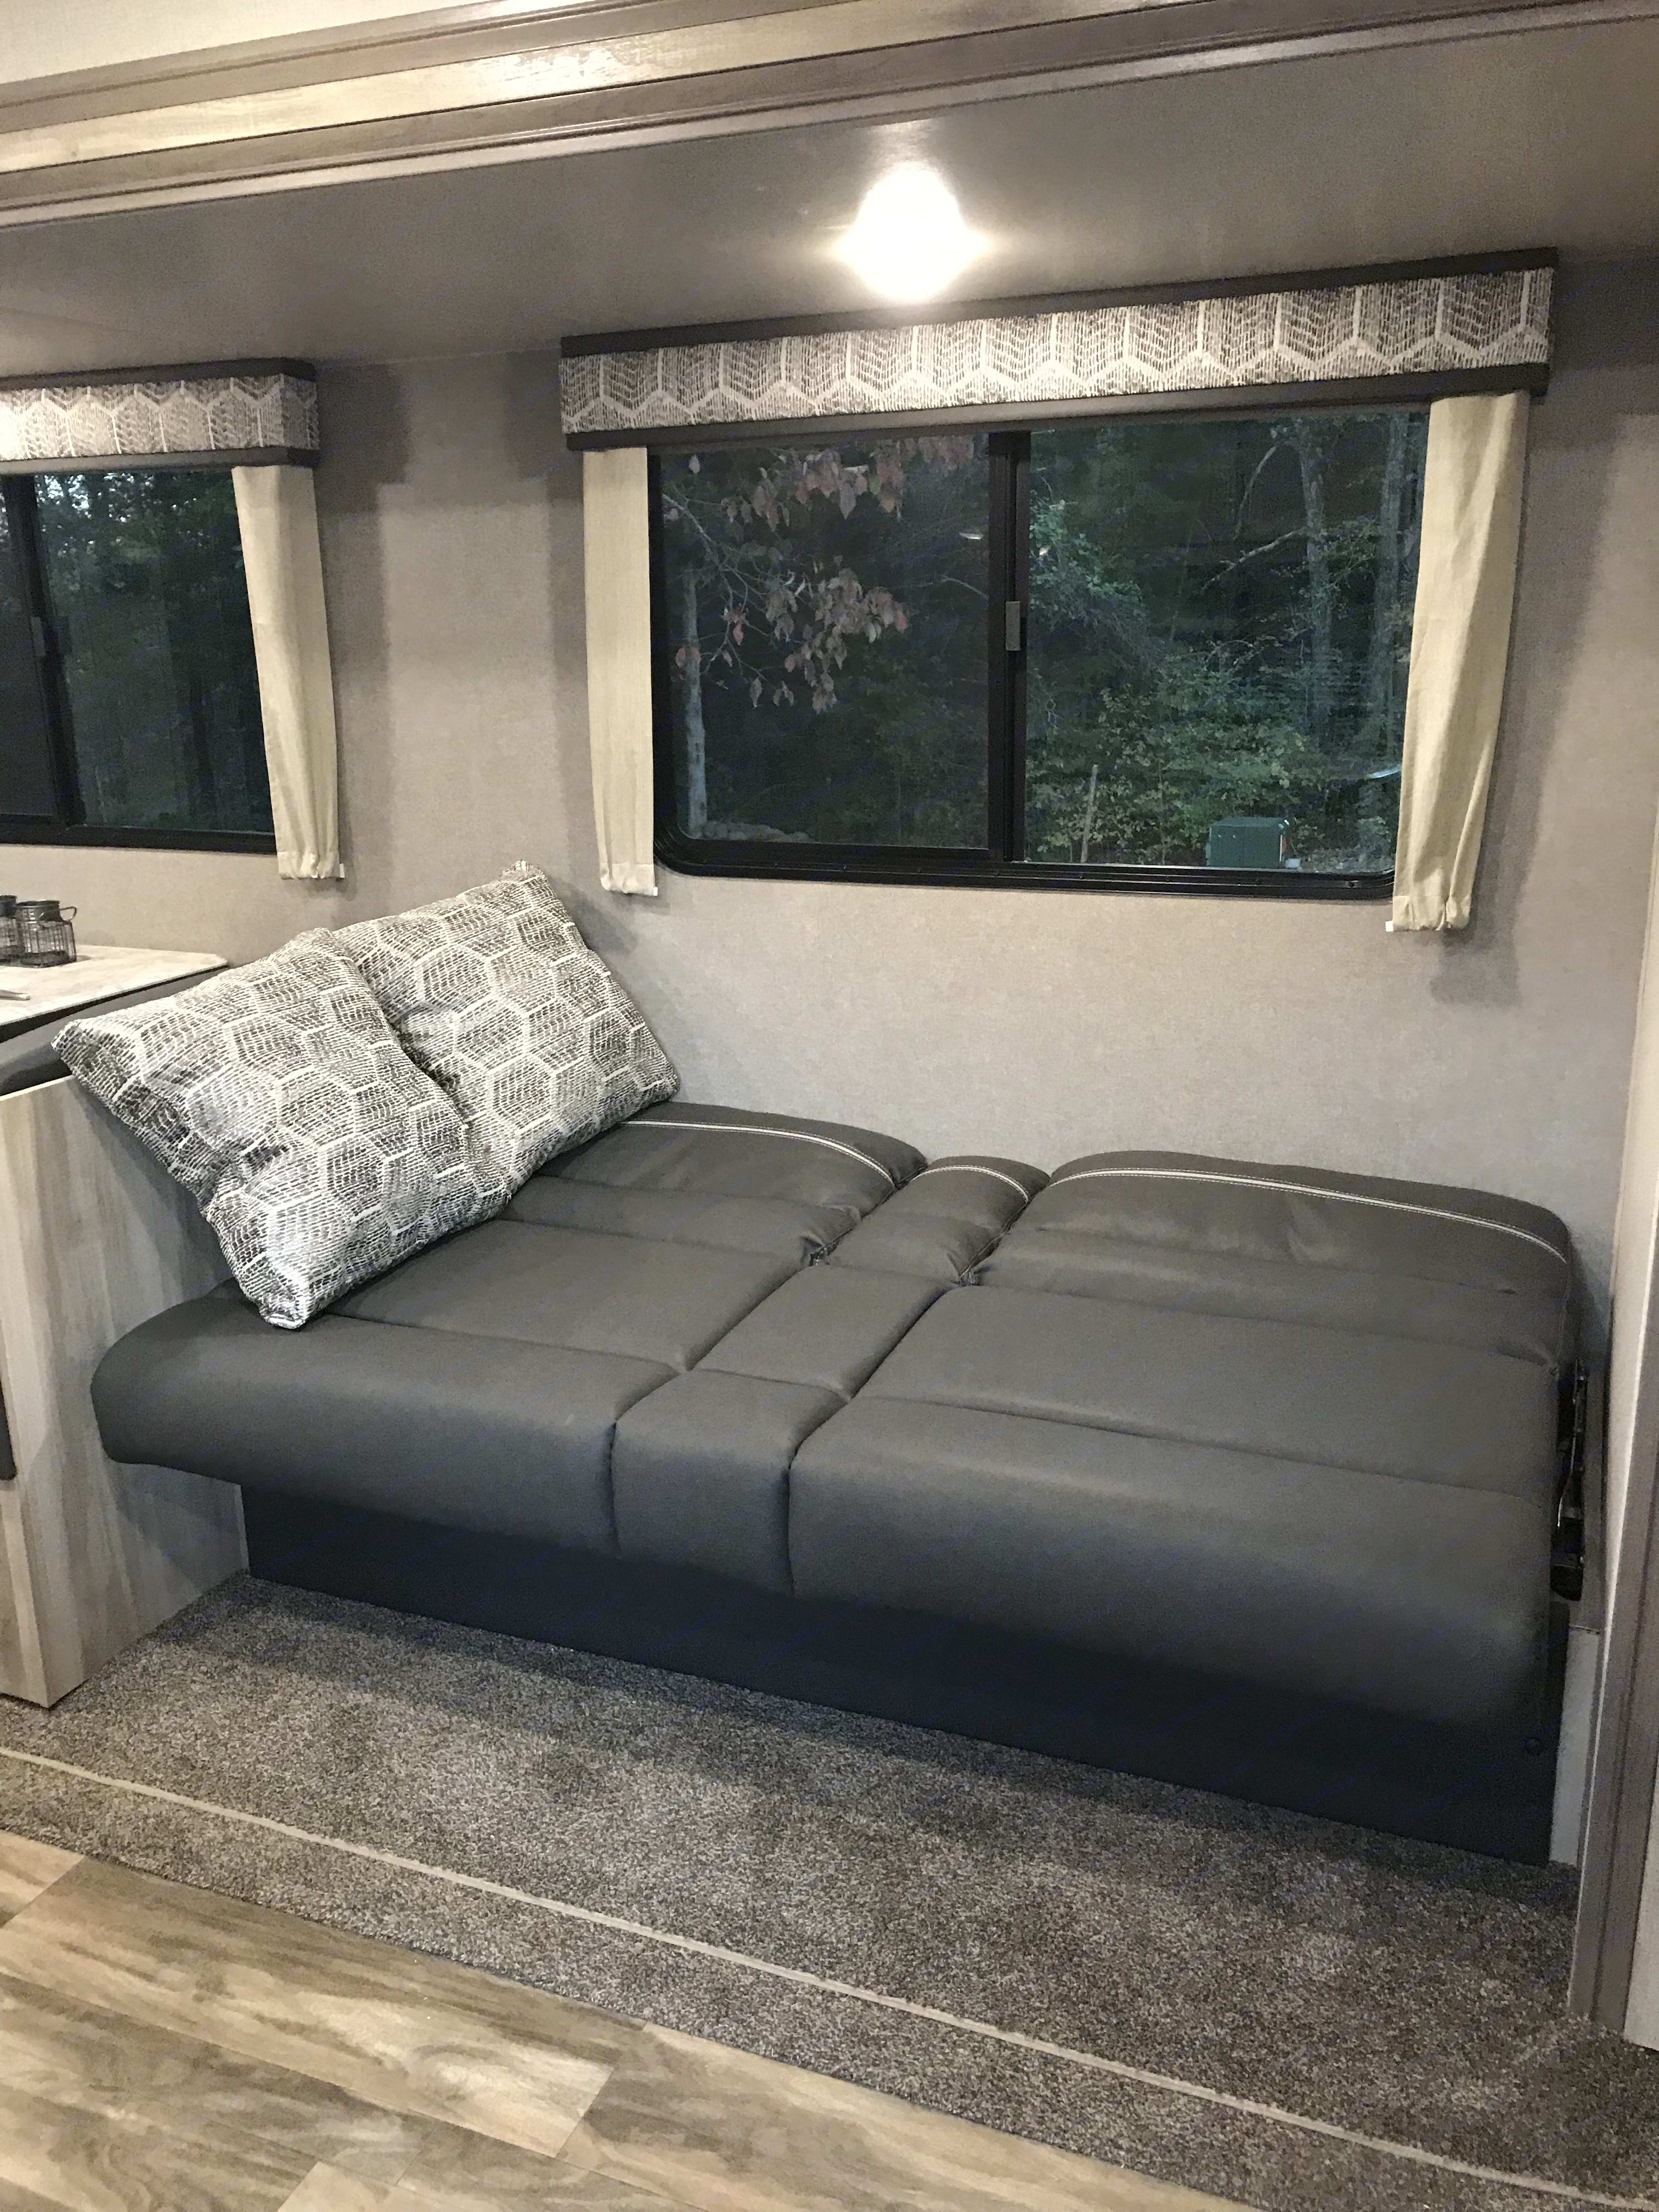 Couch folds down to make double bed. Coachmen Catalina 2020